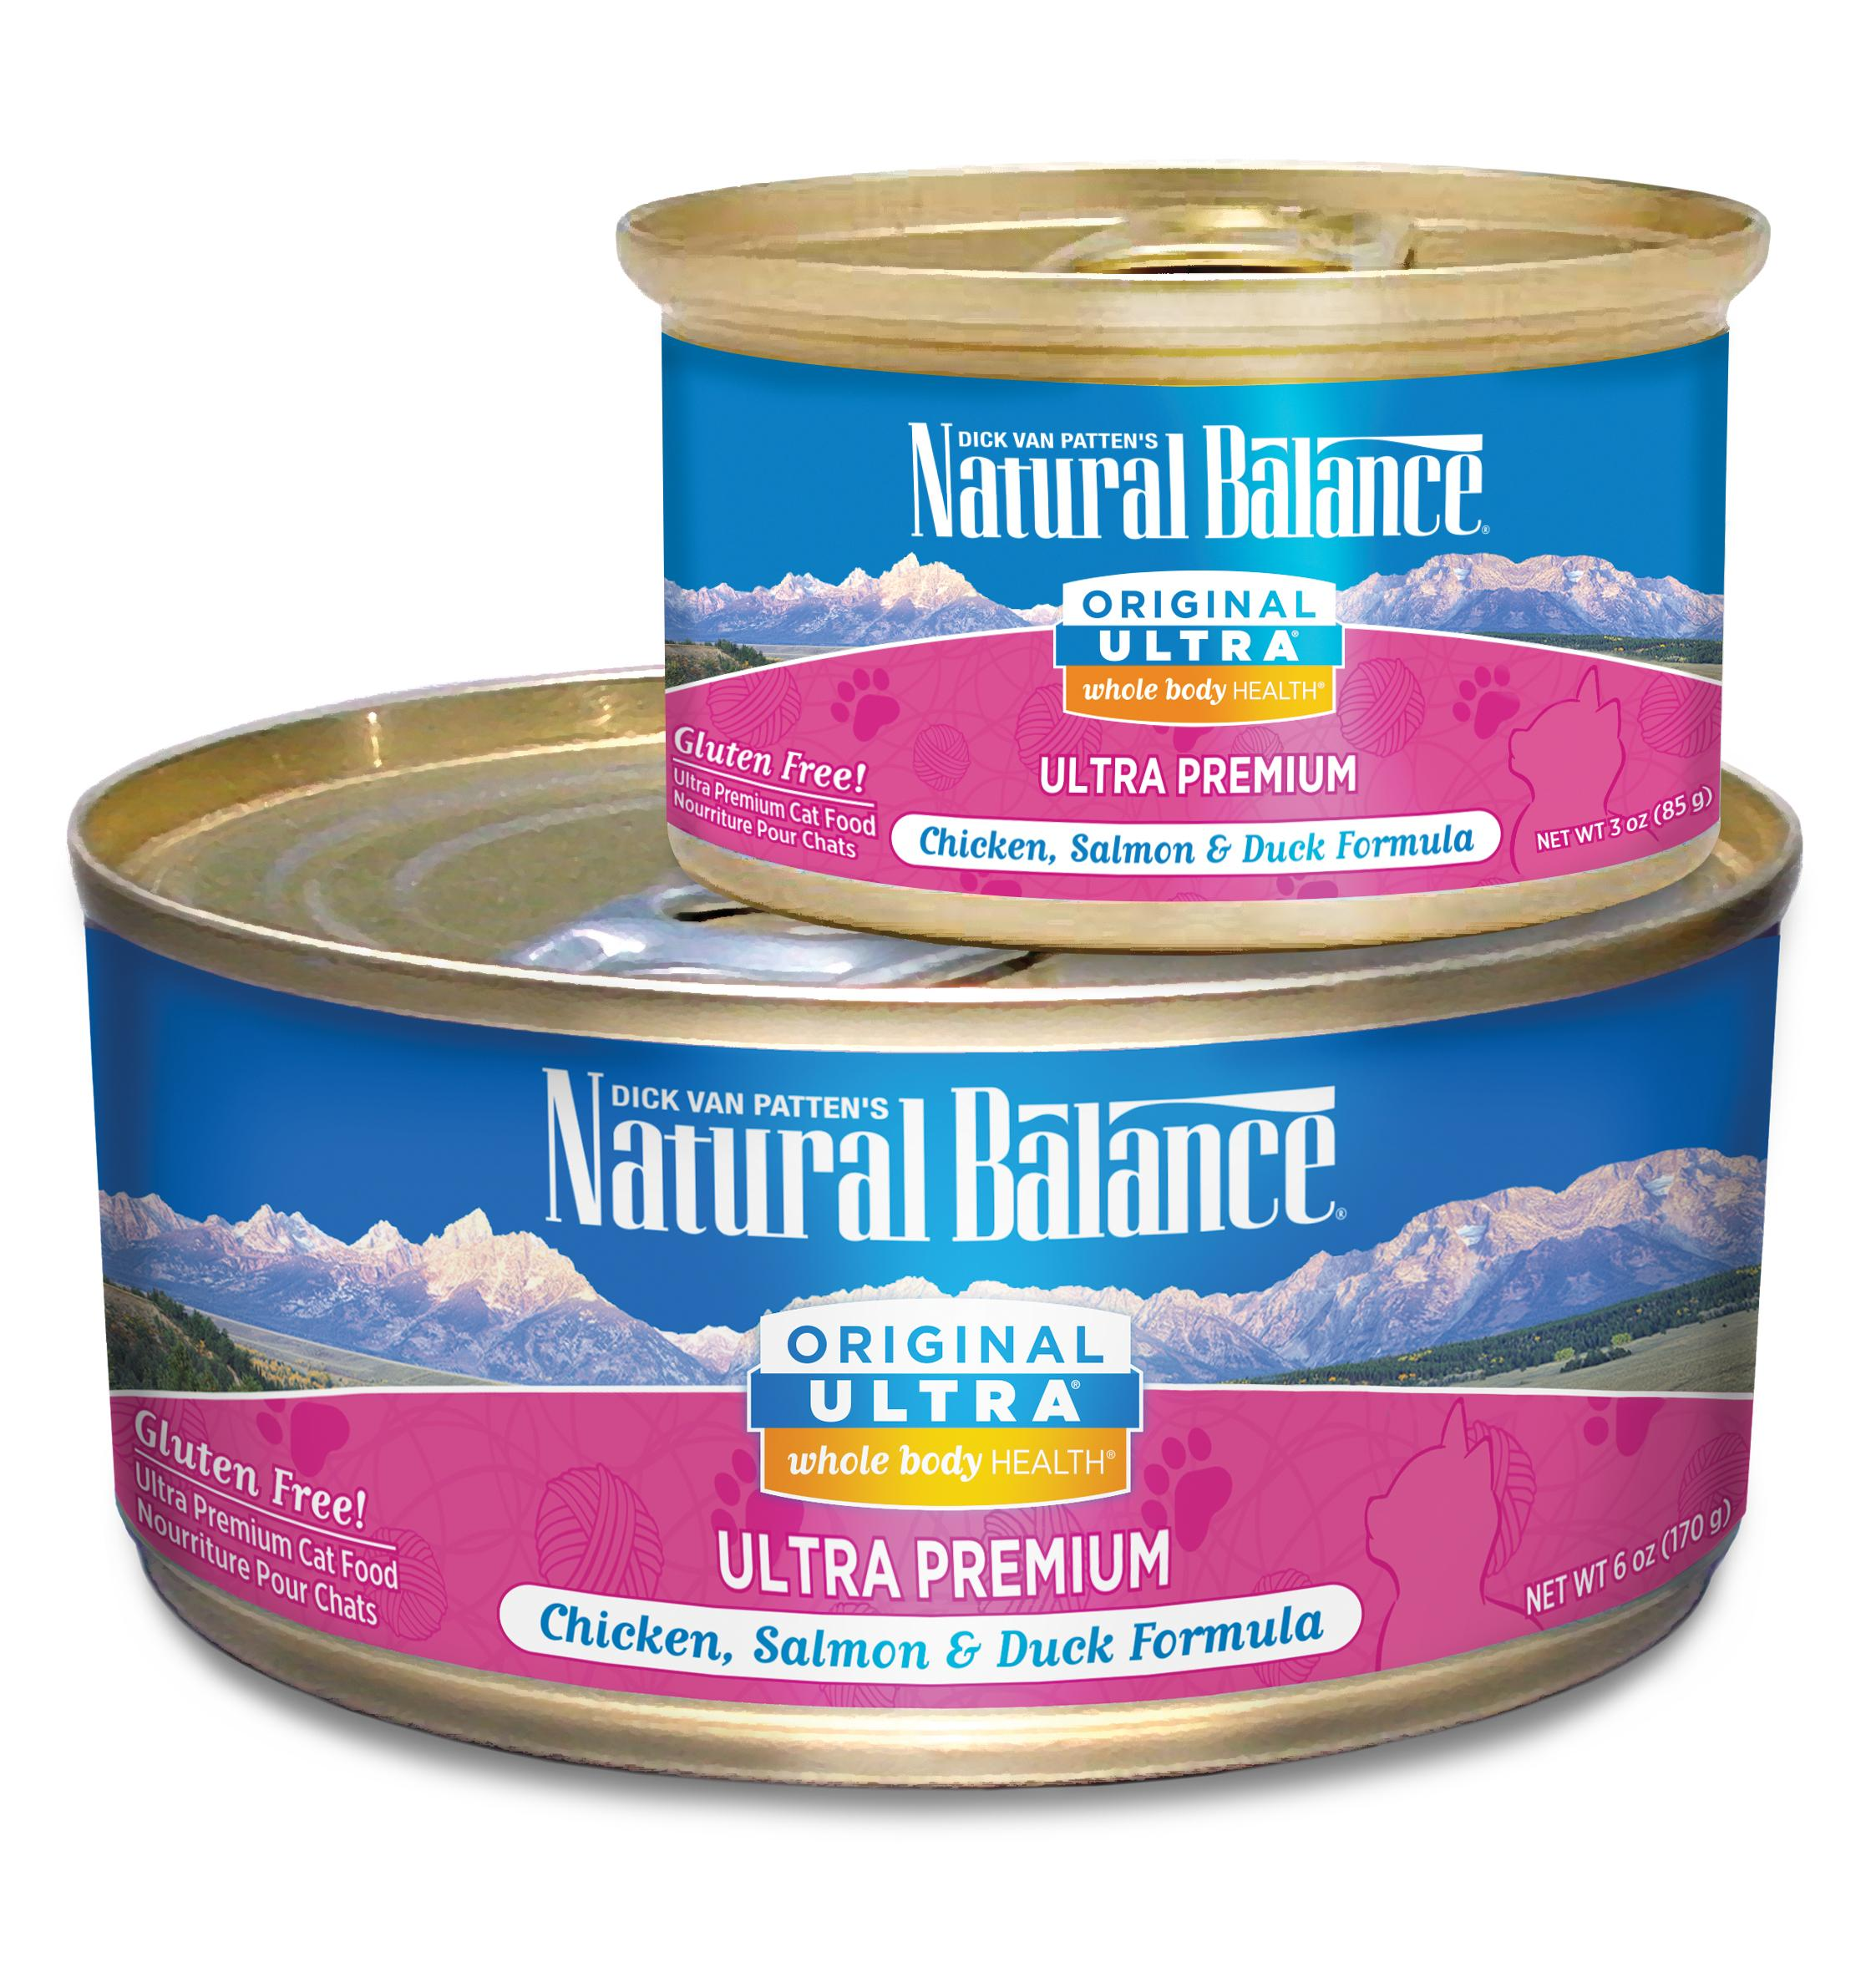 Natural Balance Fat Dog Food Recall